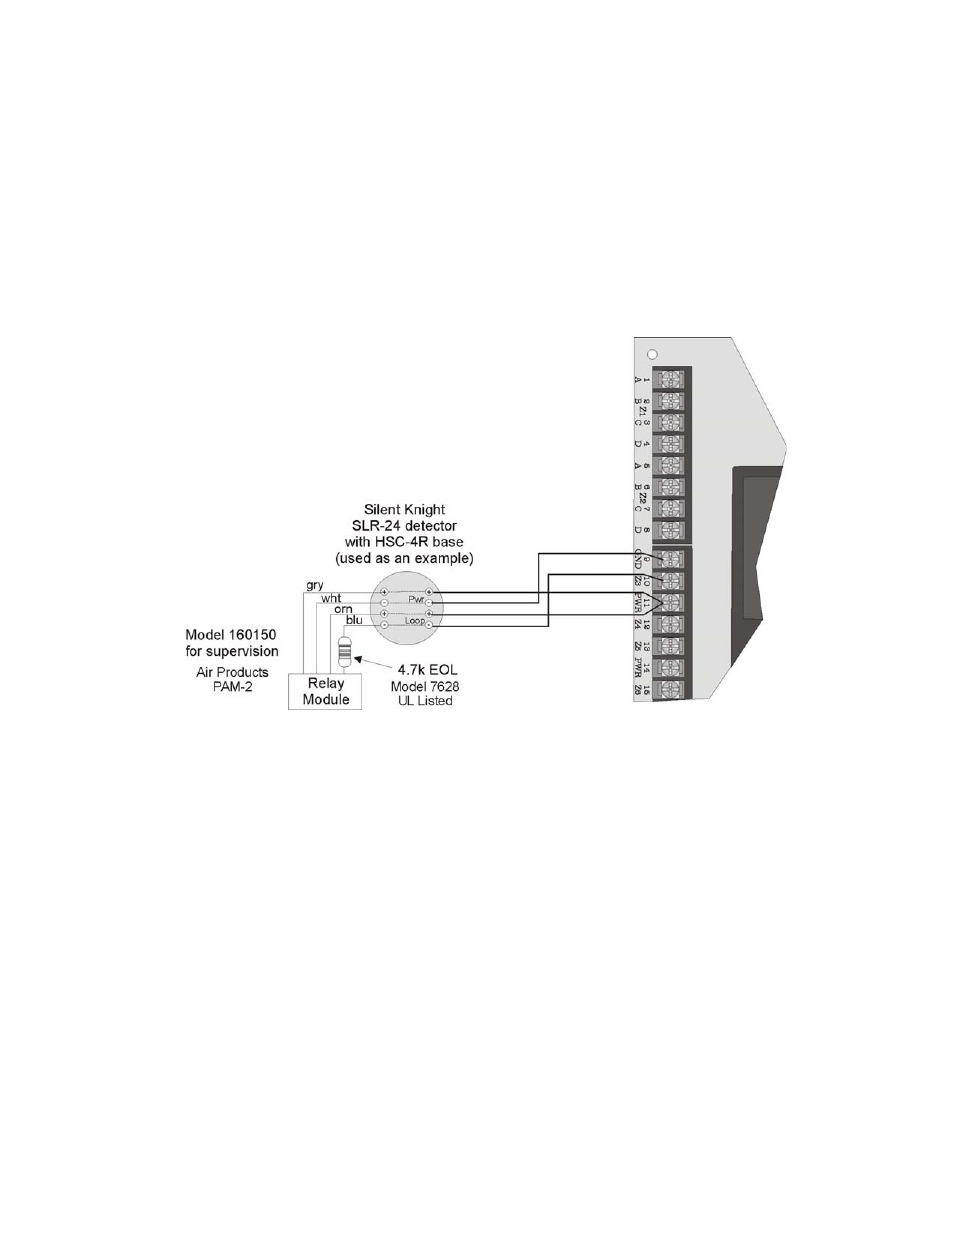 hight resolution of 3 four wire smoke detector connection 3 four wire smoke detector connection 12 silentknight sk 5208 conventional facp 10 30 zone user manual page 22